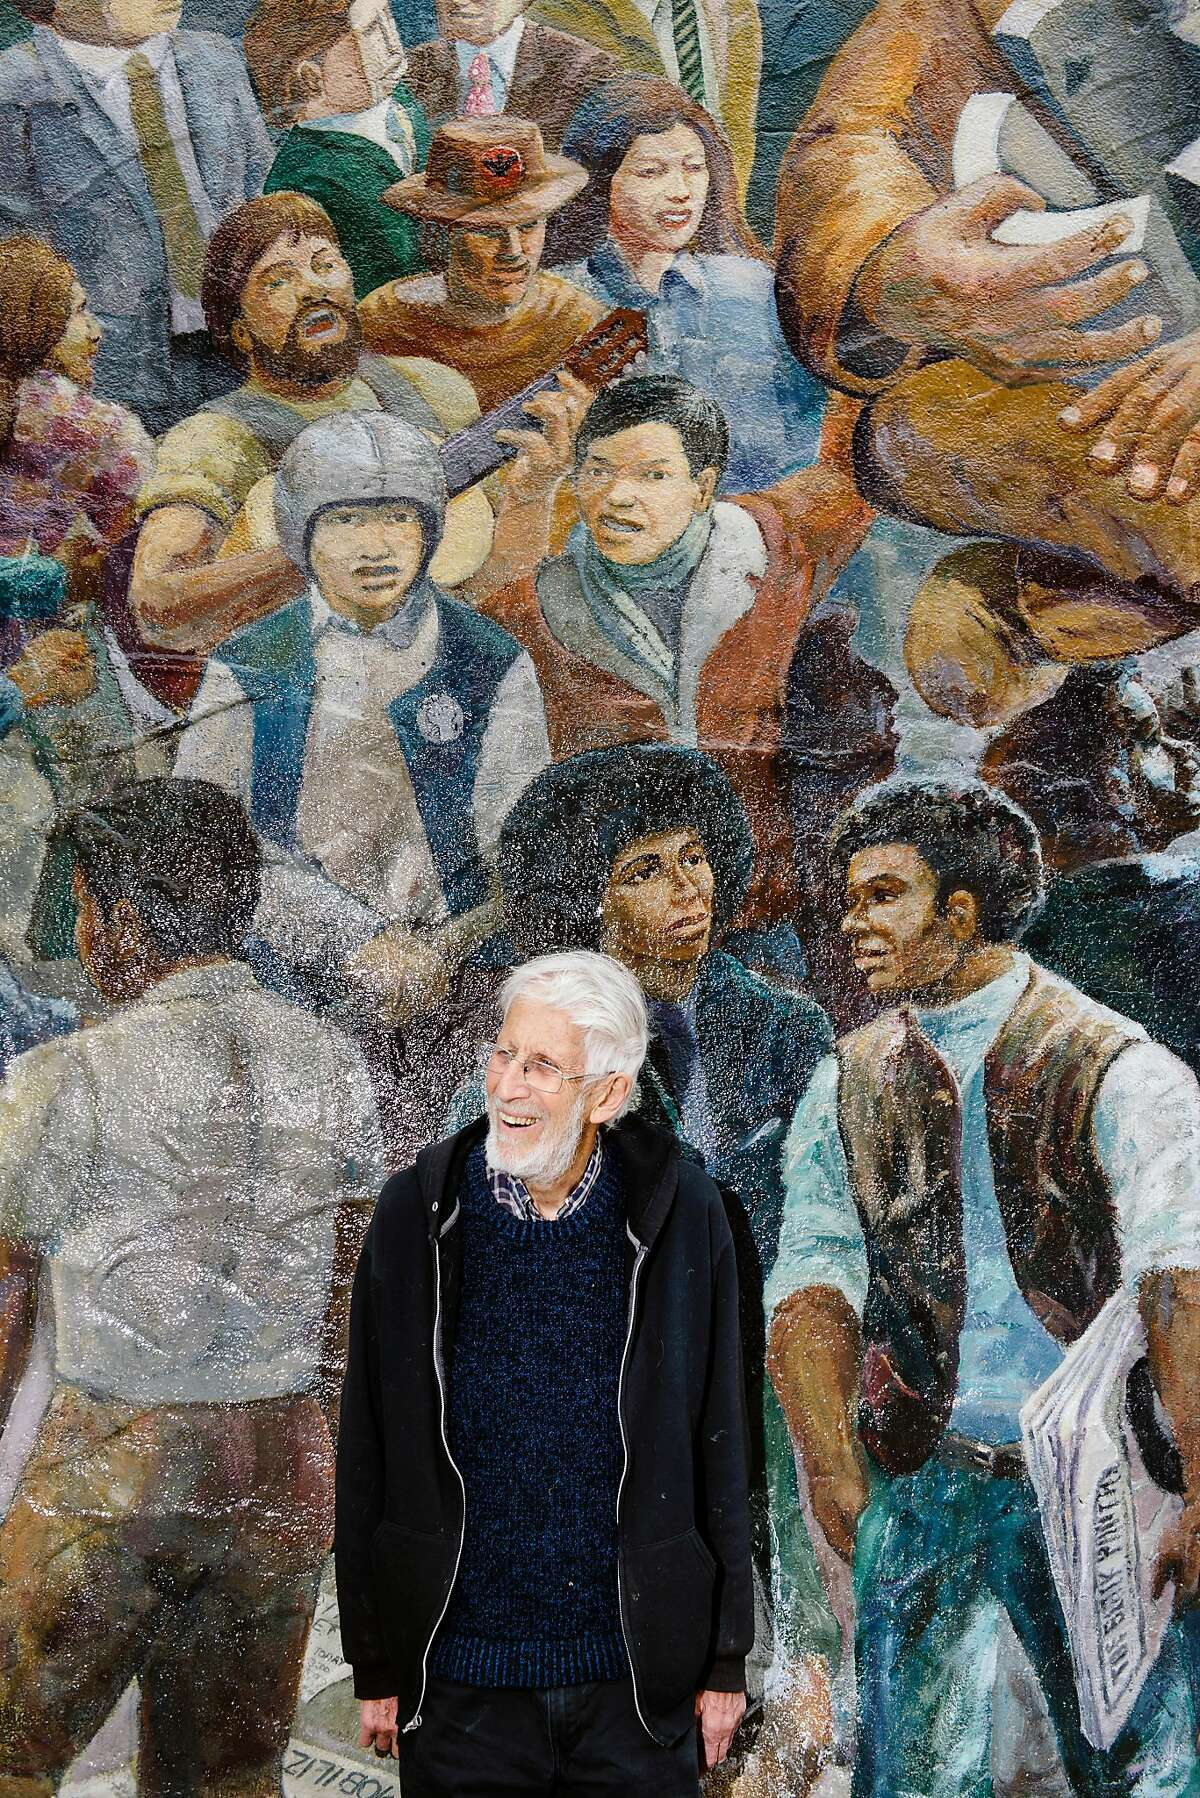 Osha Neumann, a Berkeley lawyer, advocate and artist, stands for a portrait in front of the People History of Telegraph Avenue mural that he designed and worked on in the 1970's, in Berkeley, Calif, on Monday, May 20, 2019.